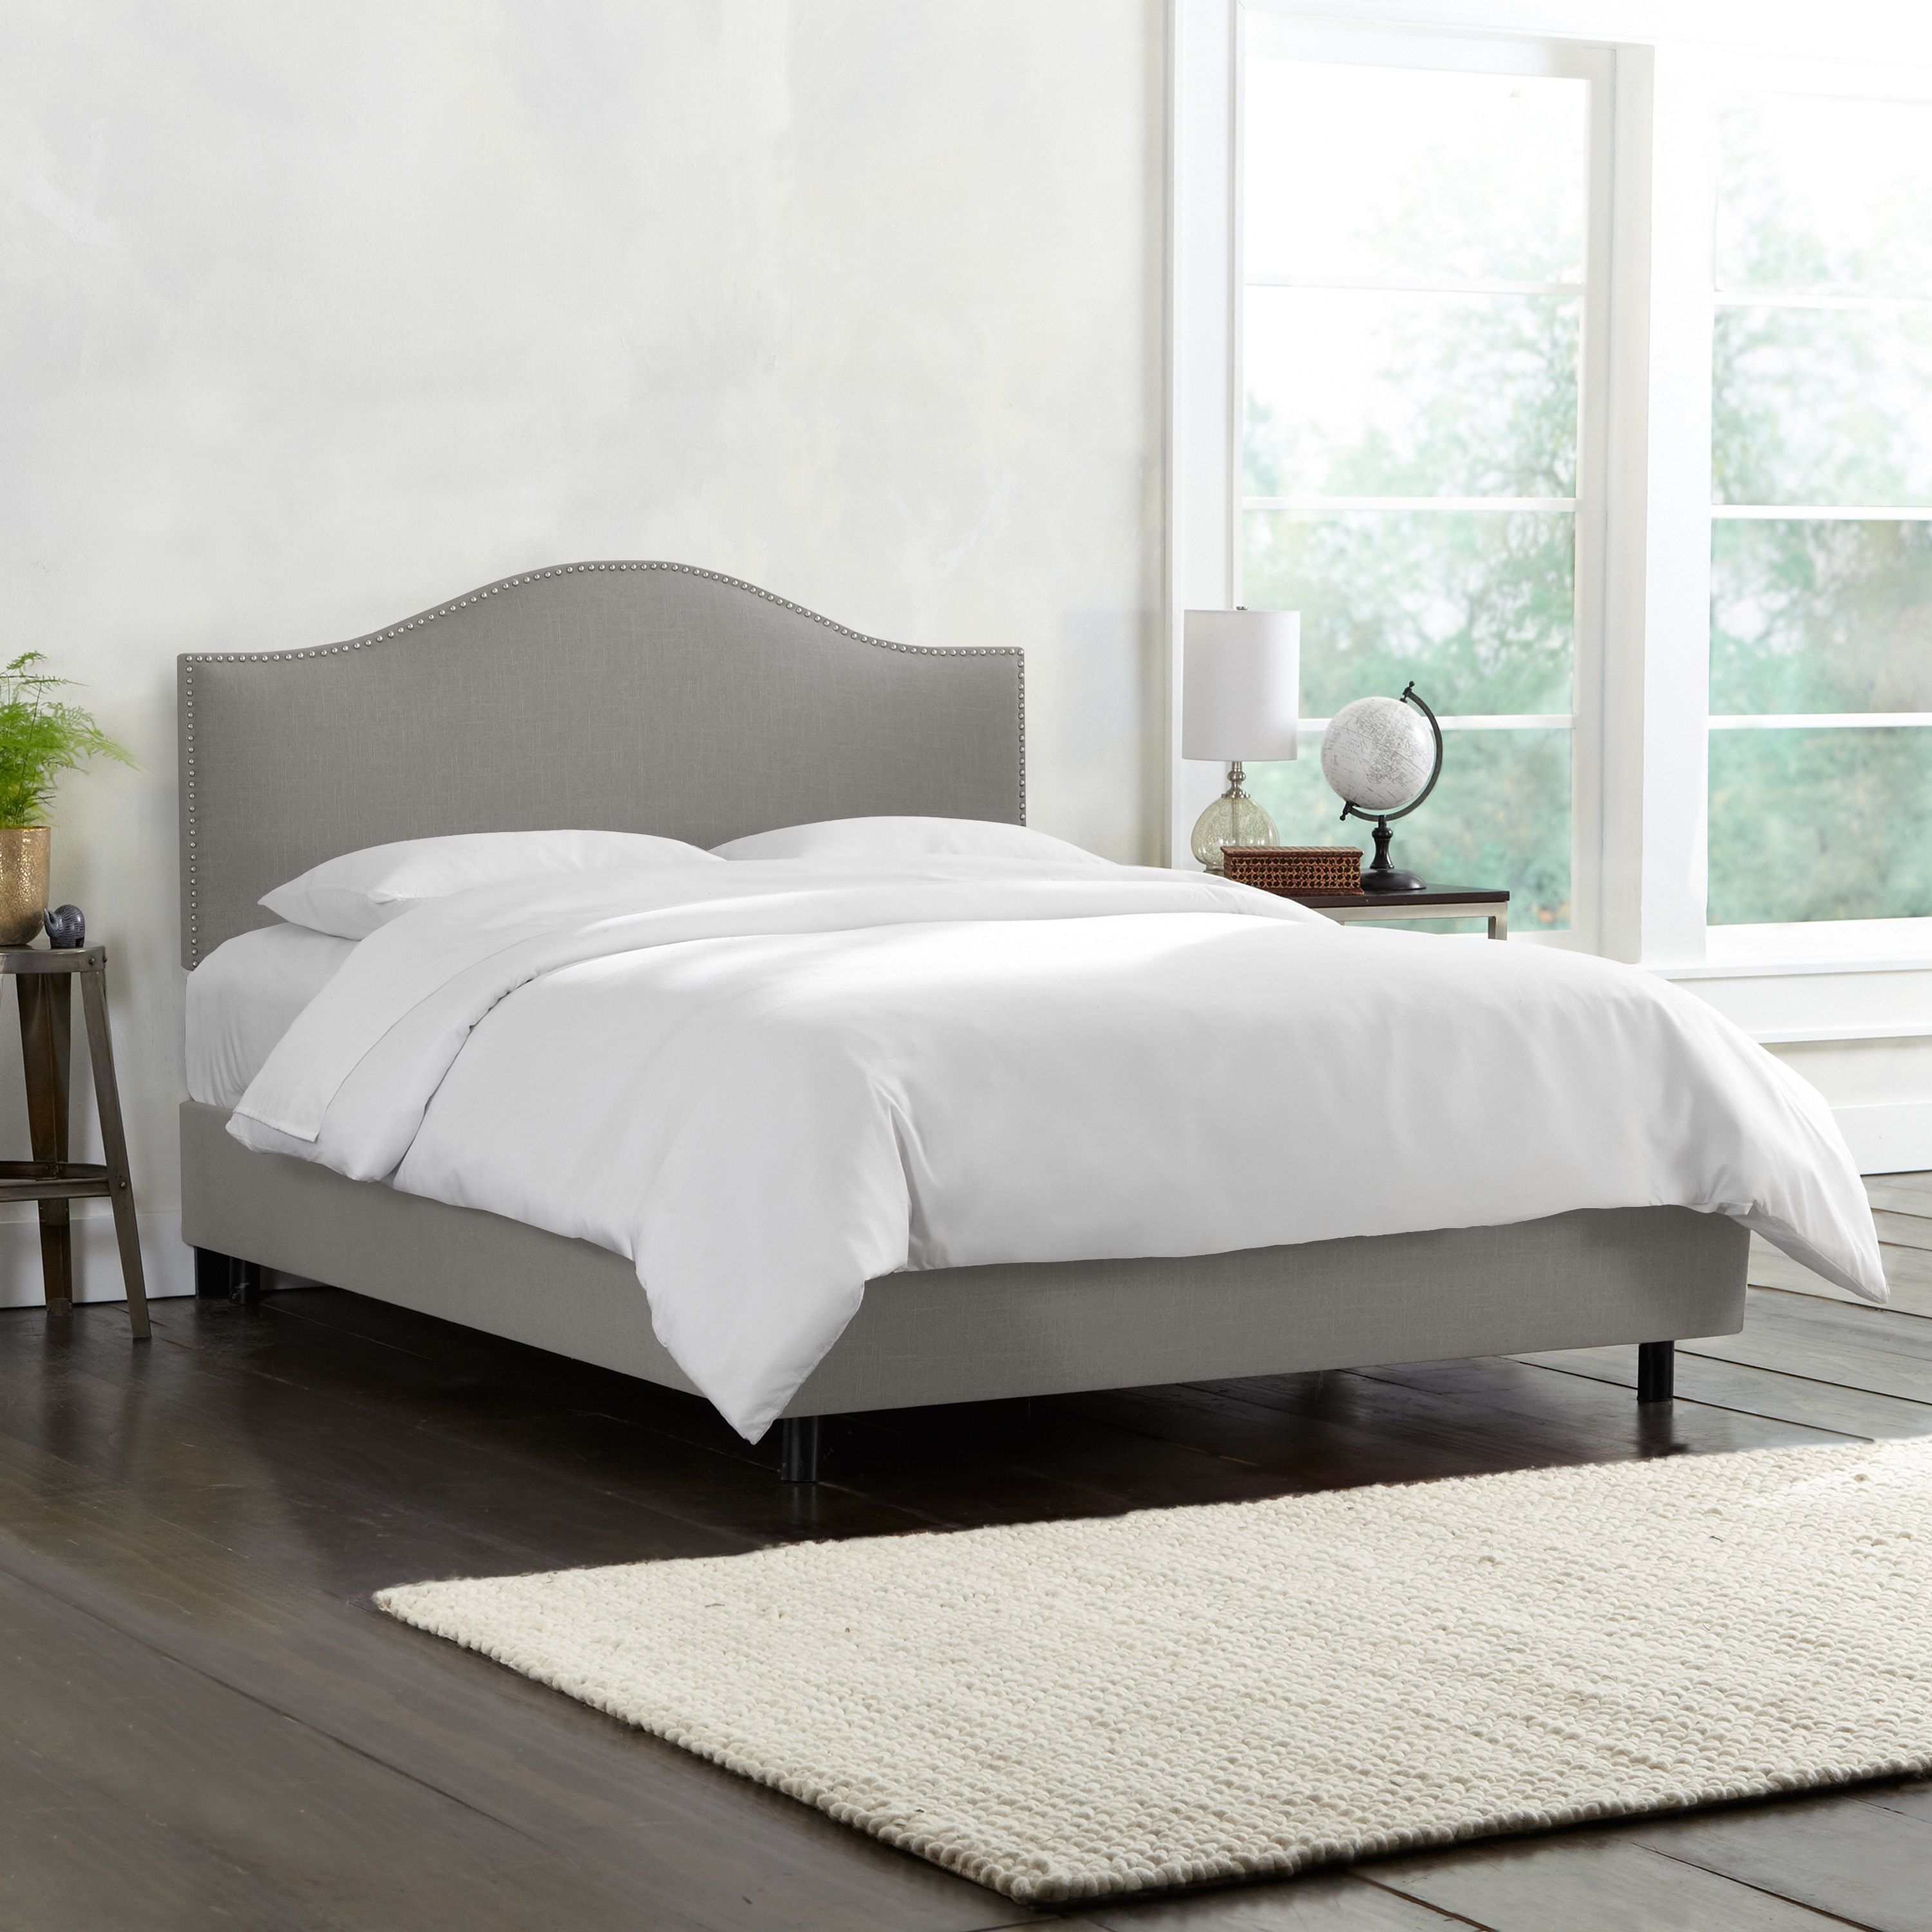 Queen Beds: Transform the look of your bedroom by updating possibly ...